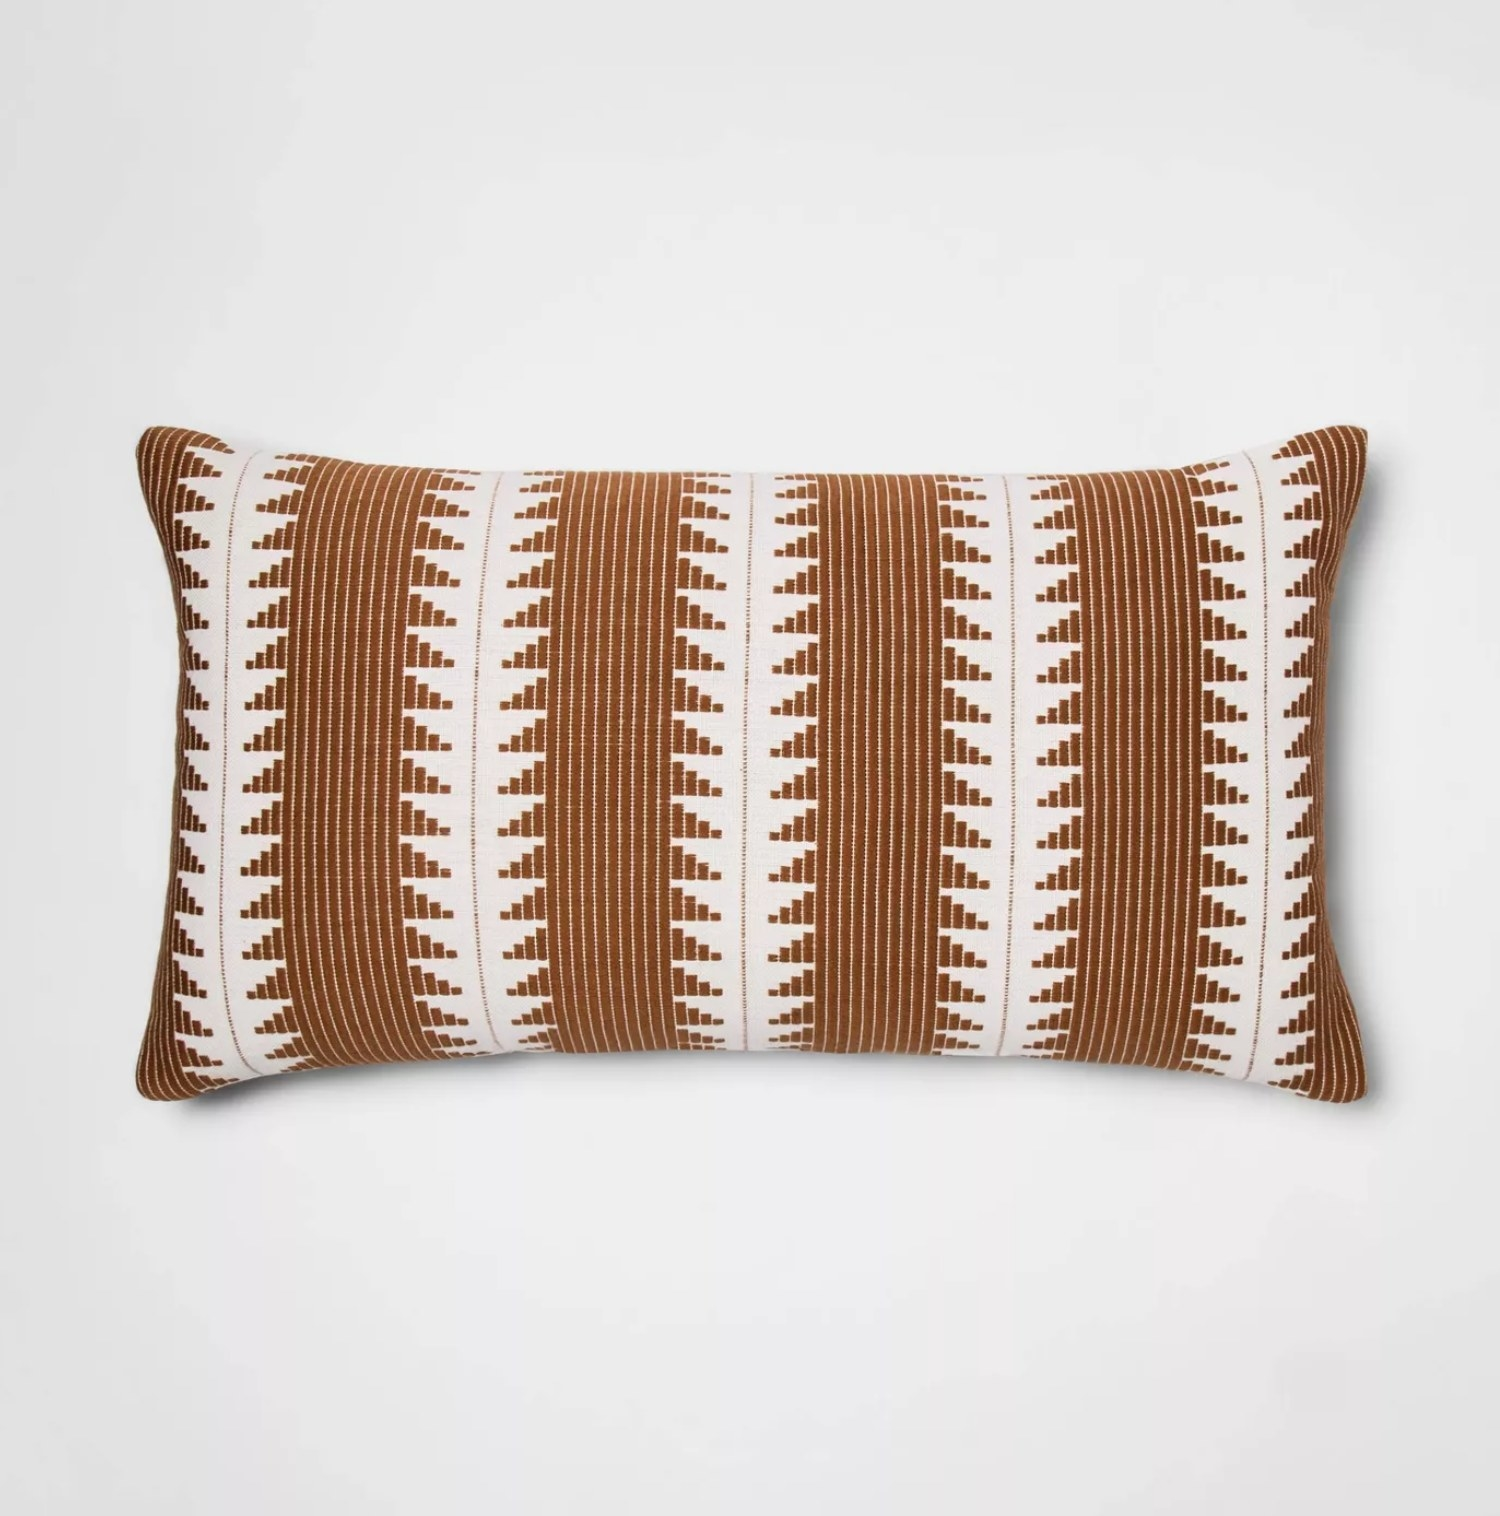 The pillow in tan with white stripes